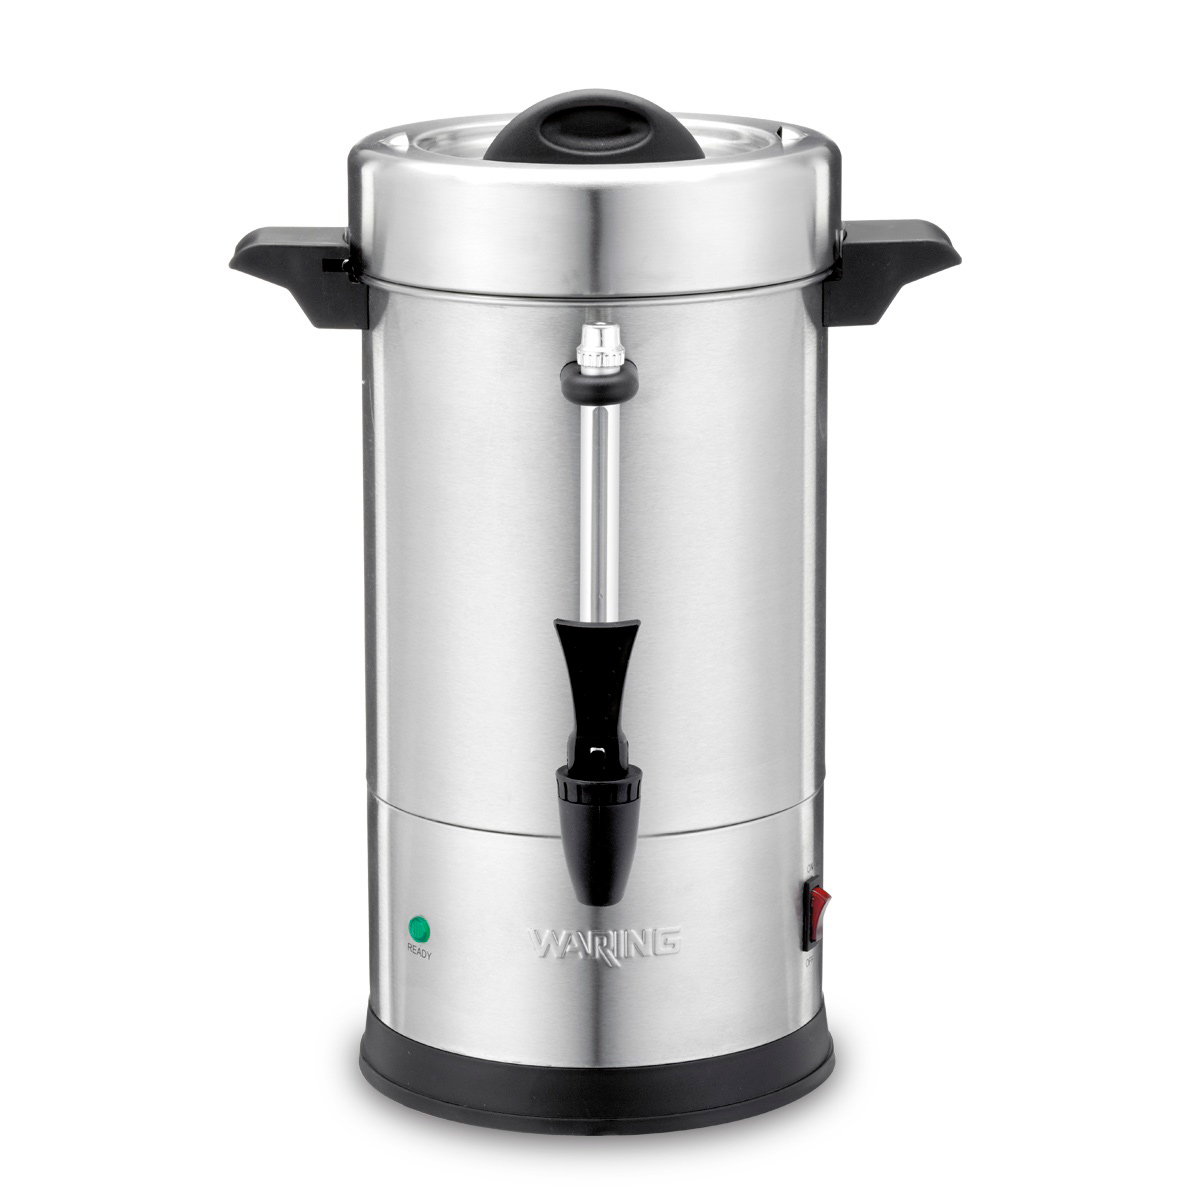 Waring WCU30 coffee maker / brewer urn